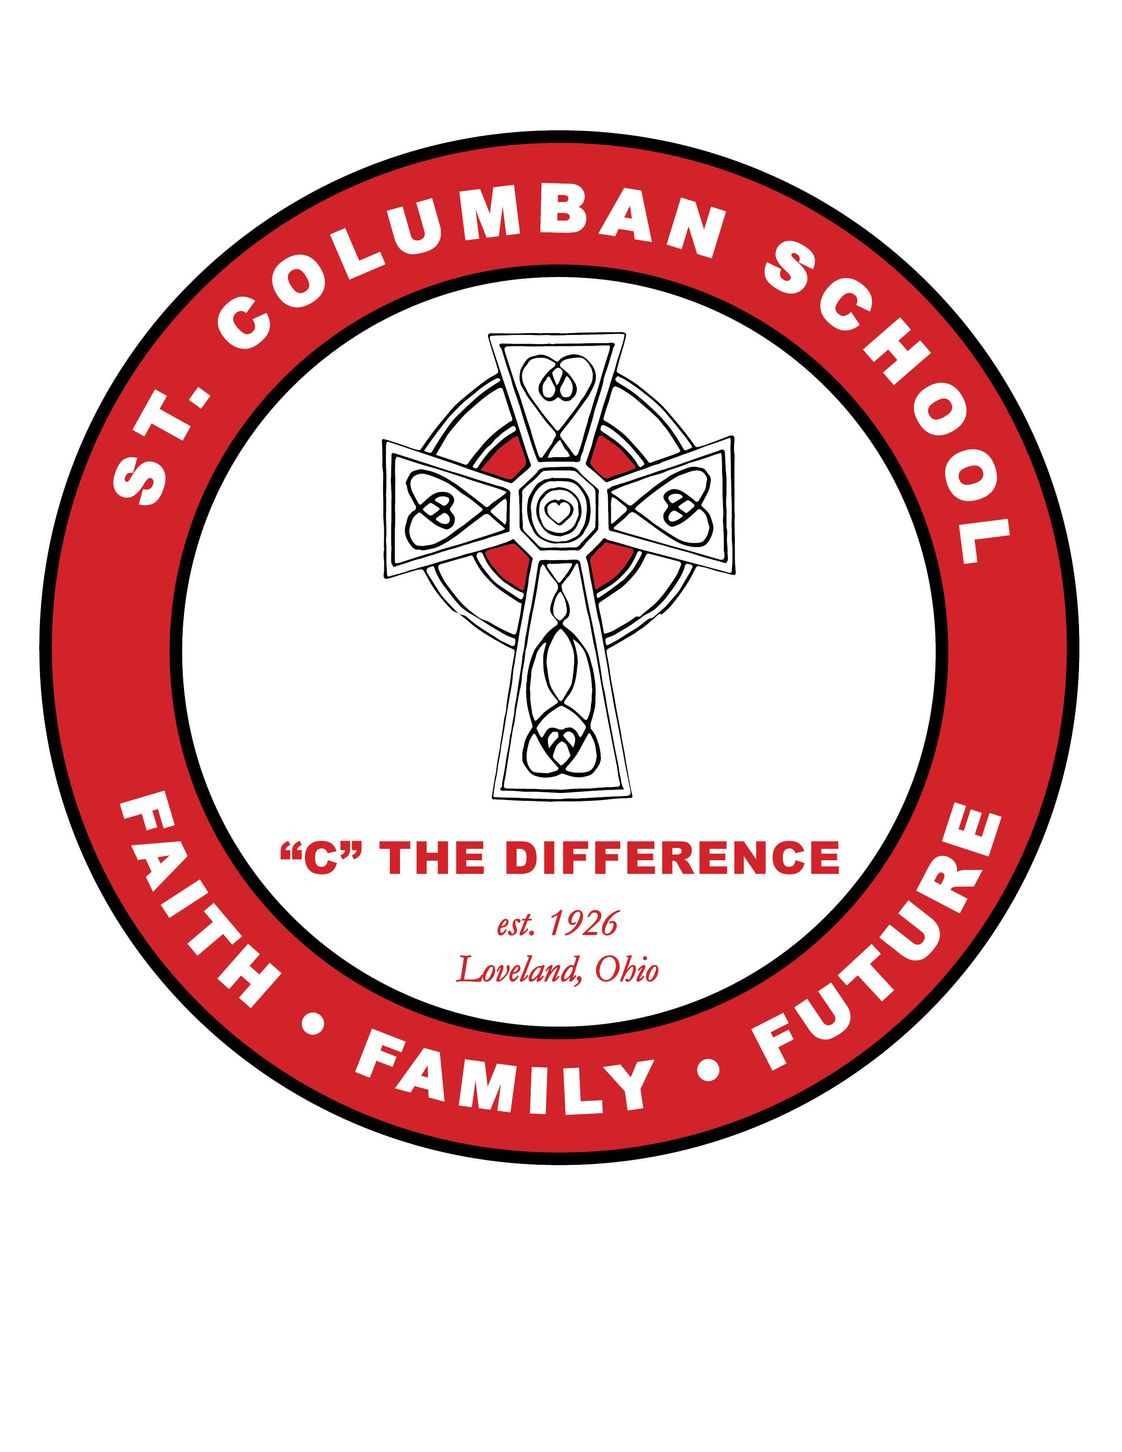 St Columban Elementary School Photo #1